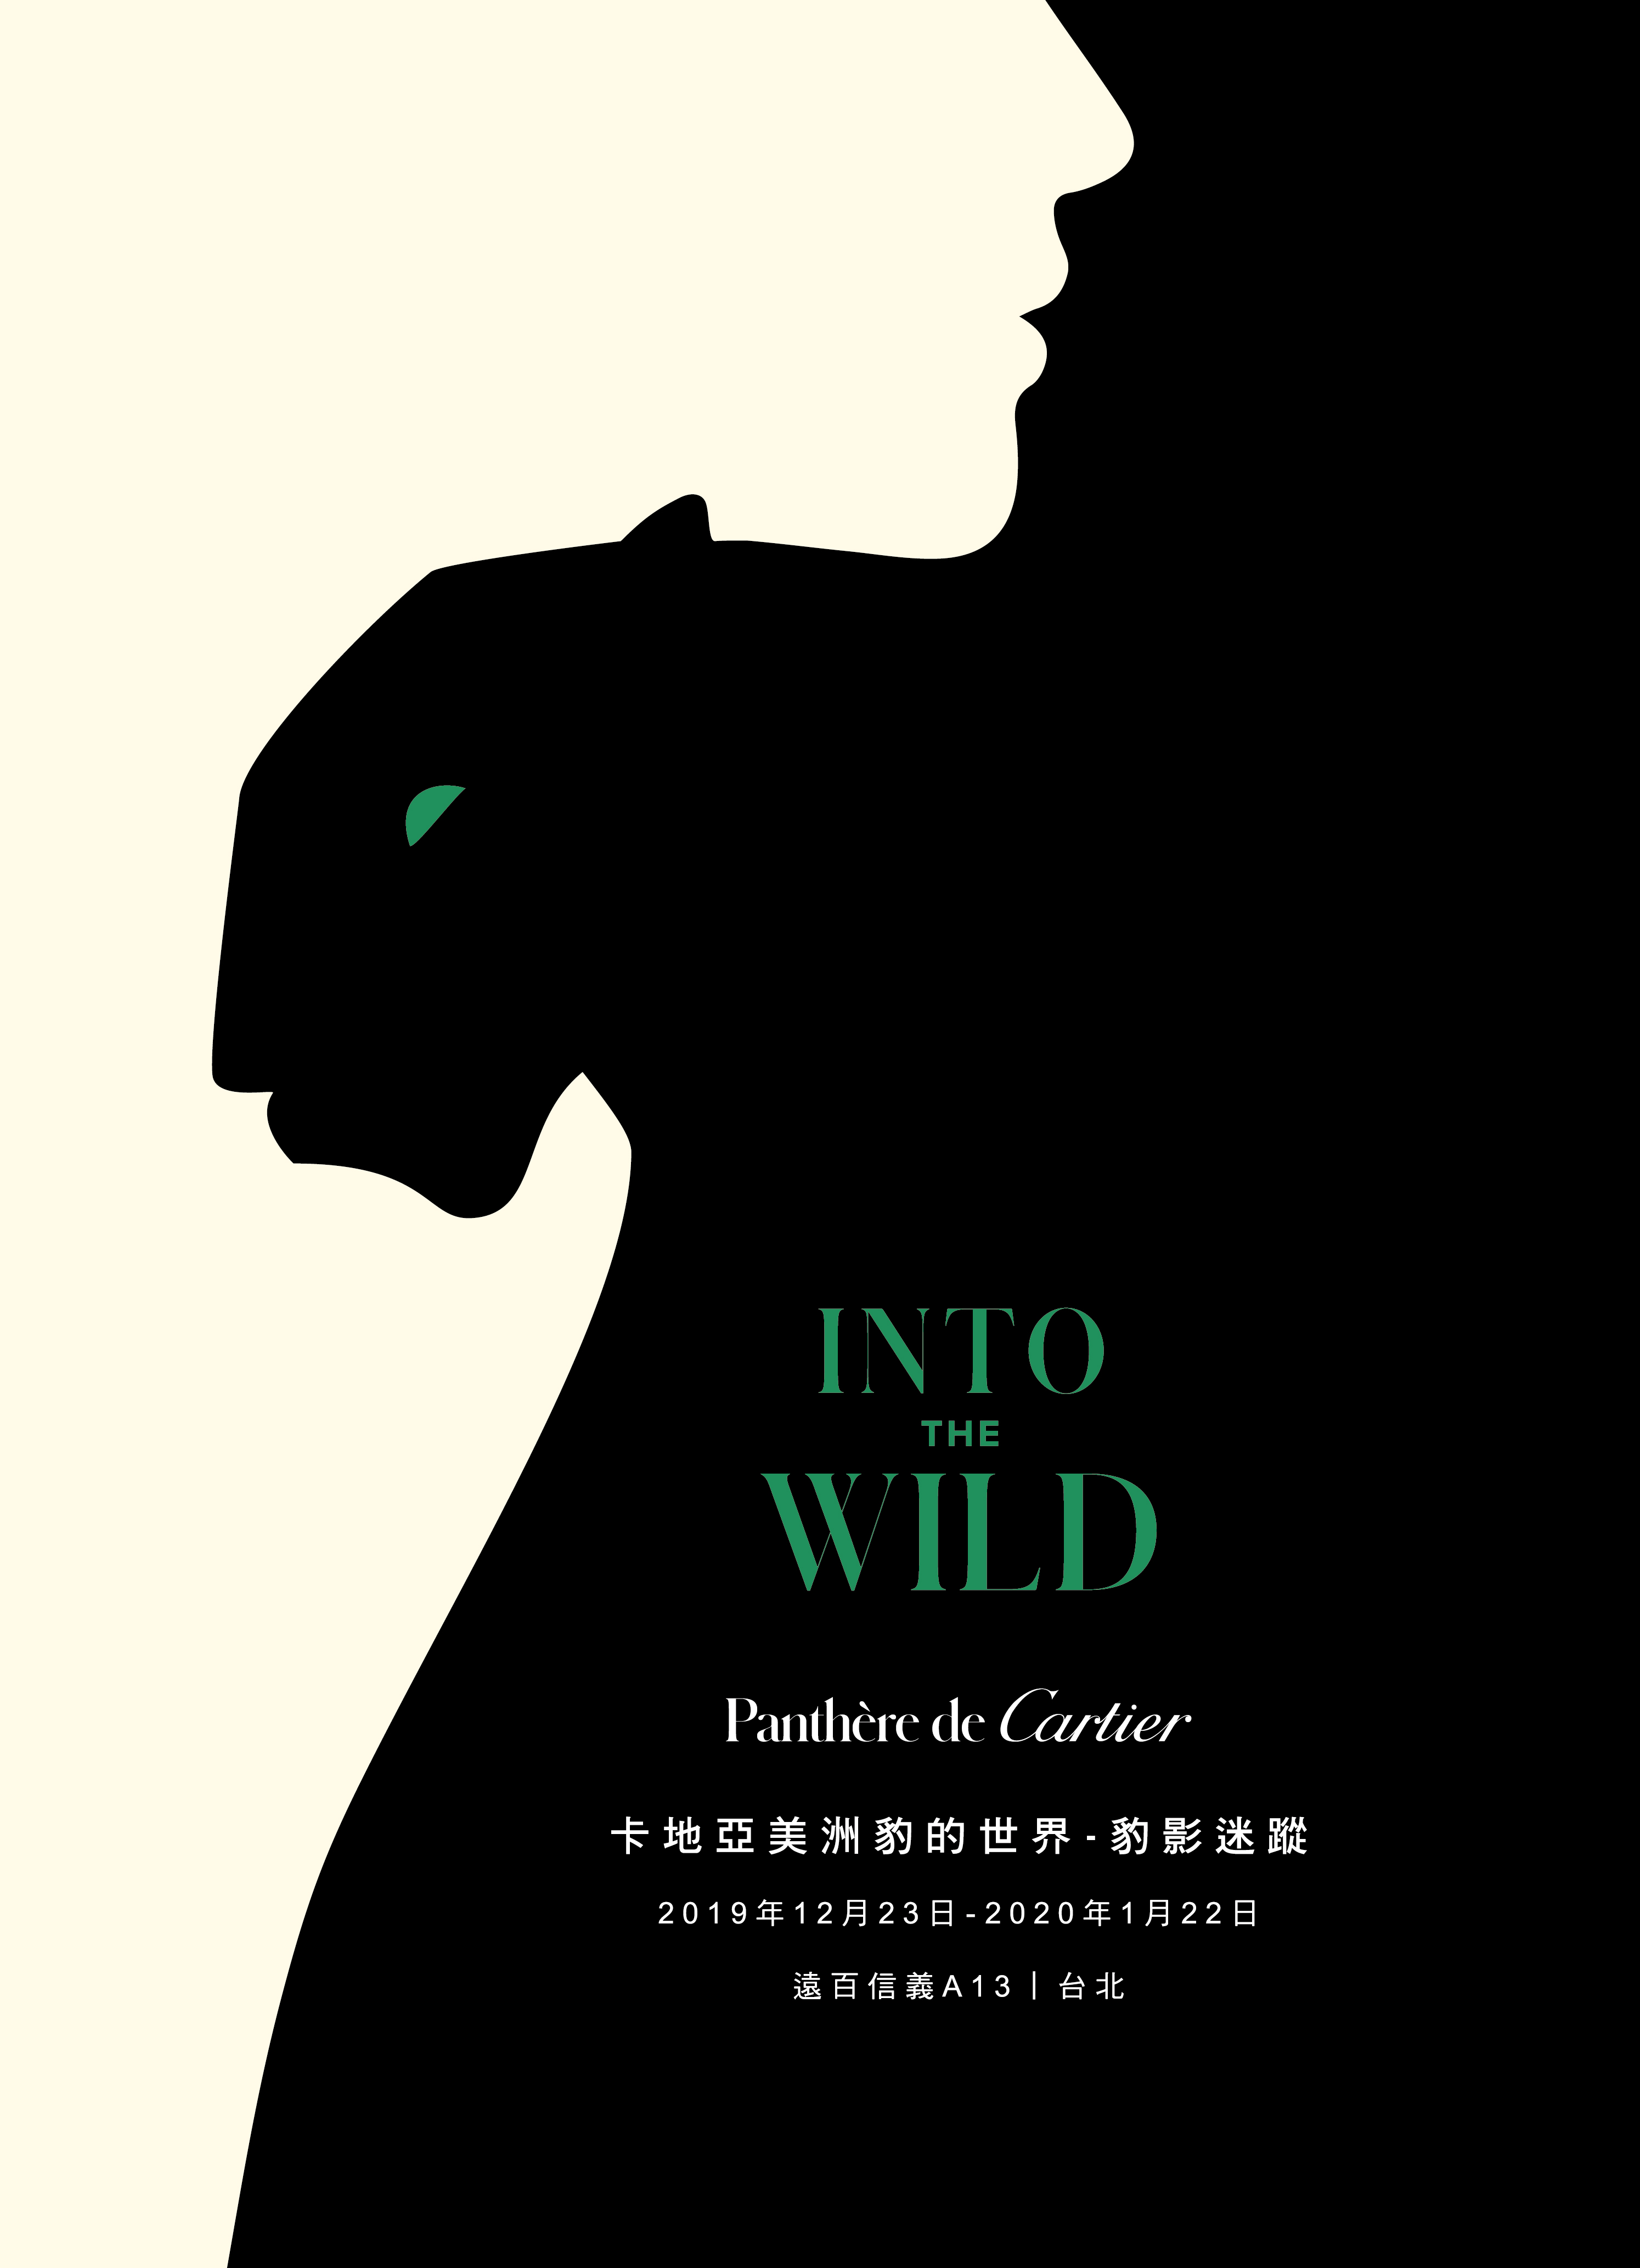 Cartier卡地亞「INTO THE WILD豹影迷蹤」展覽,演繹美洲豹的不朽傳奇